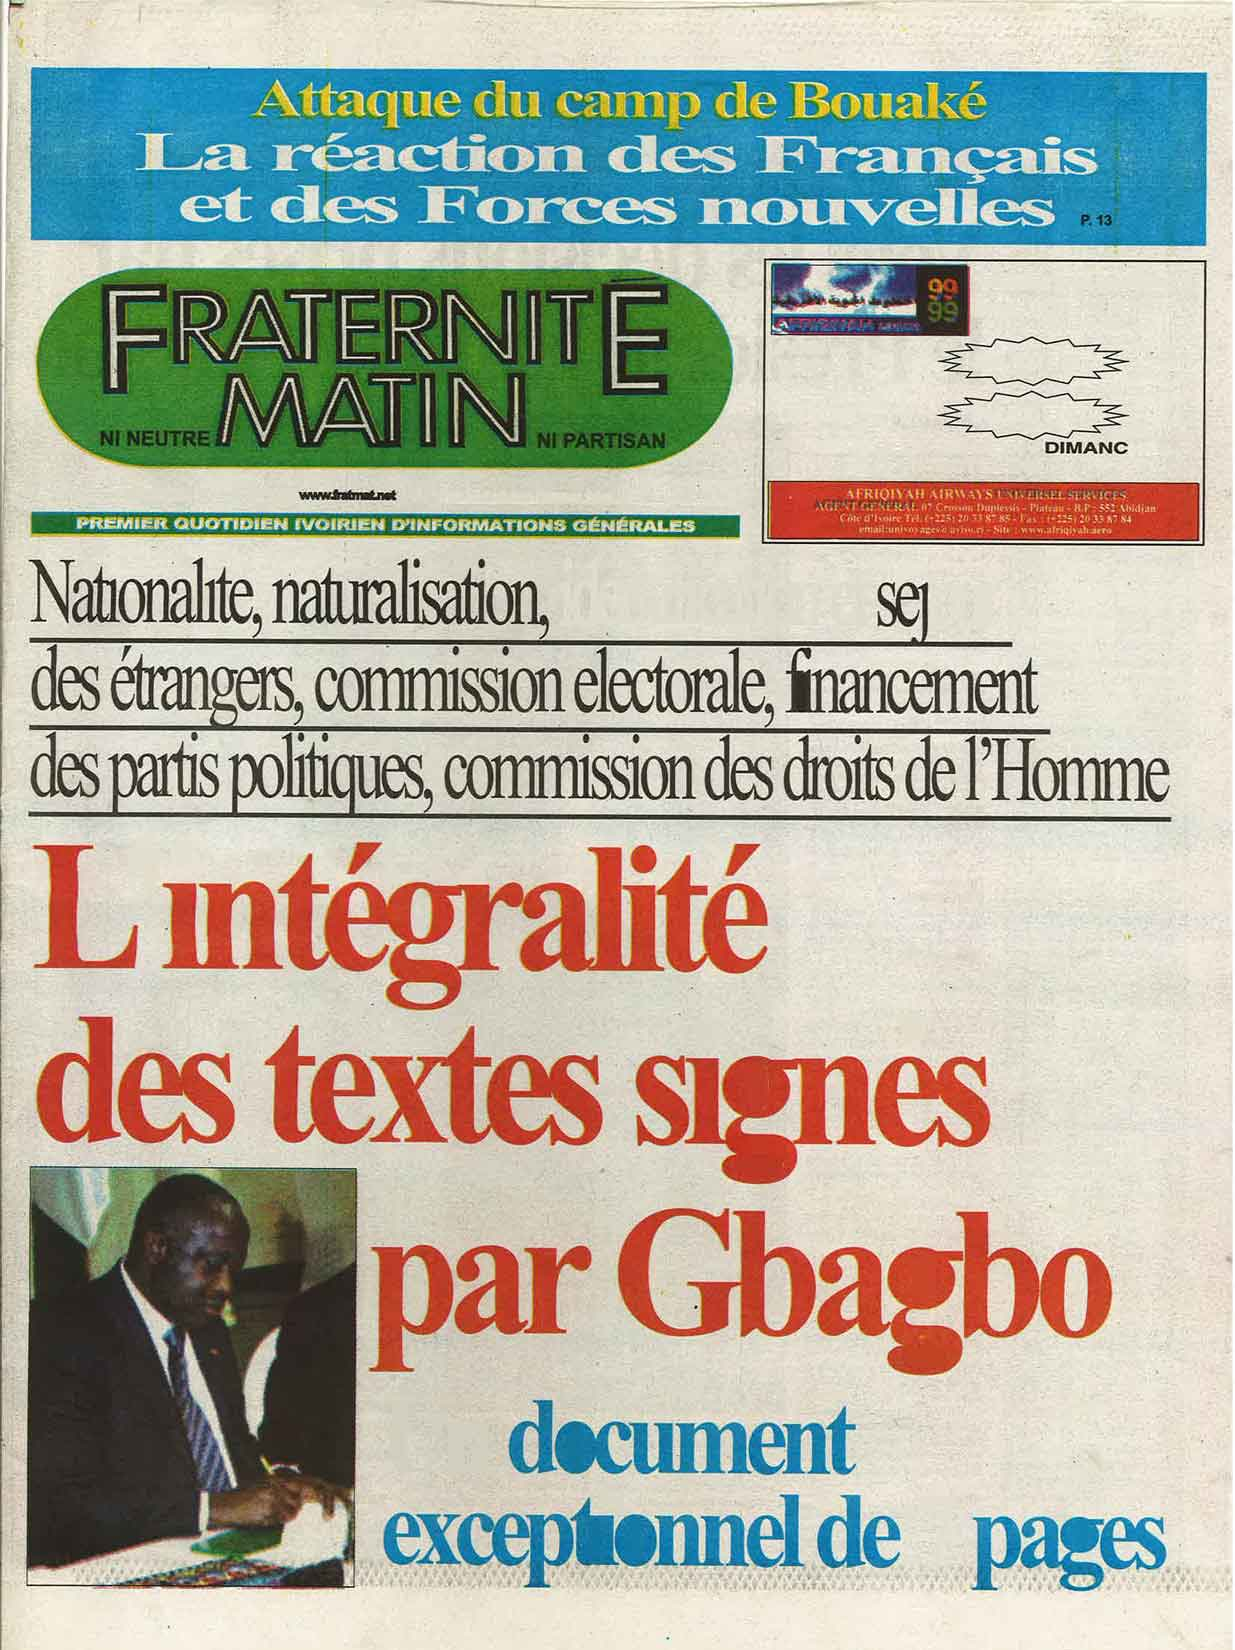 West African Newspaper 2005